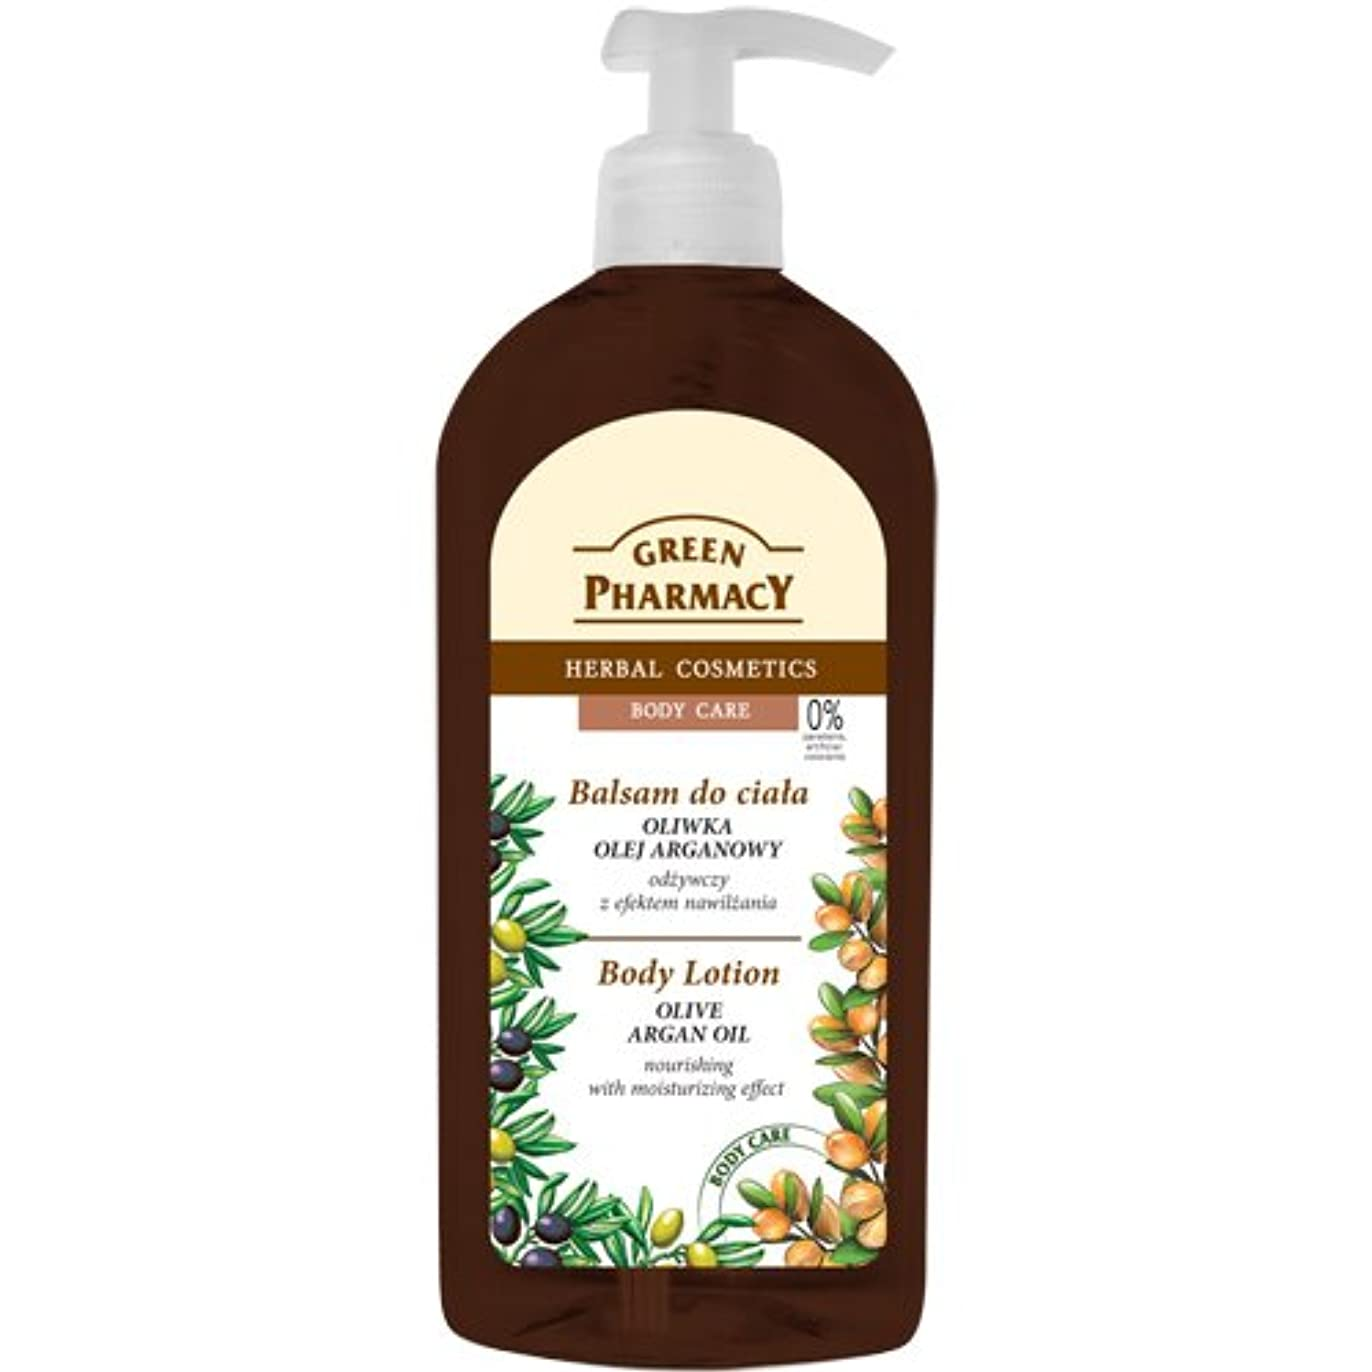 Elfa Pharm Green Pharmacy グリーンファーマシー Body Lotion ボディローション Olive Argan Oil